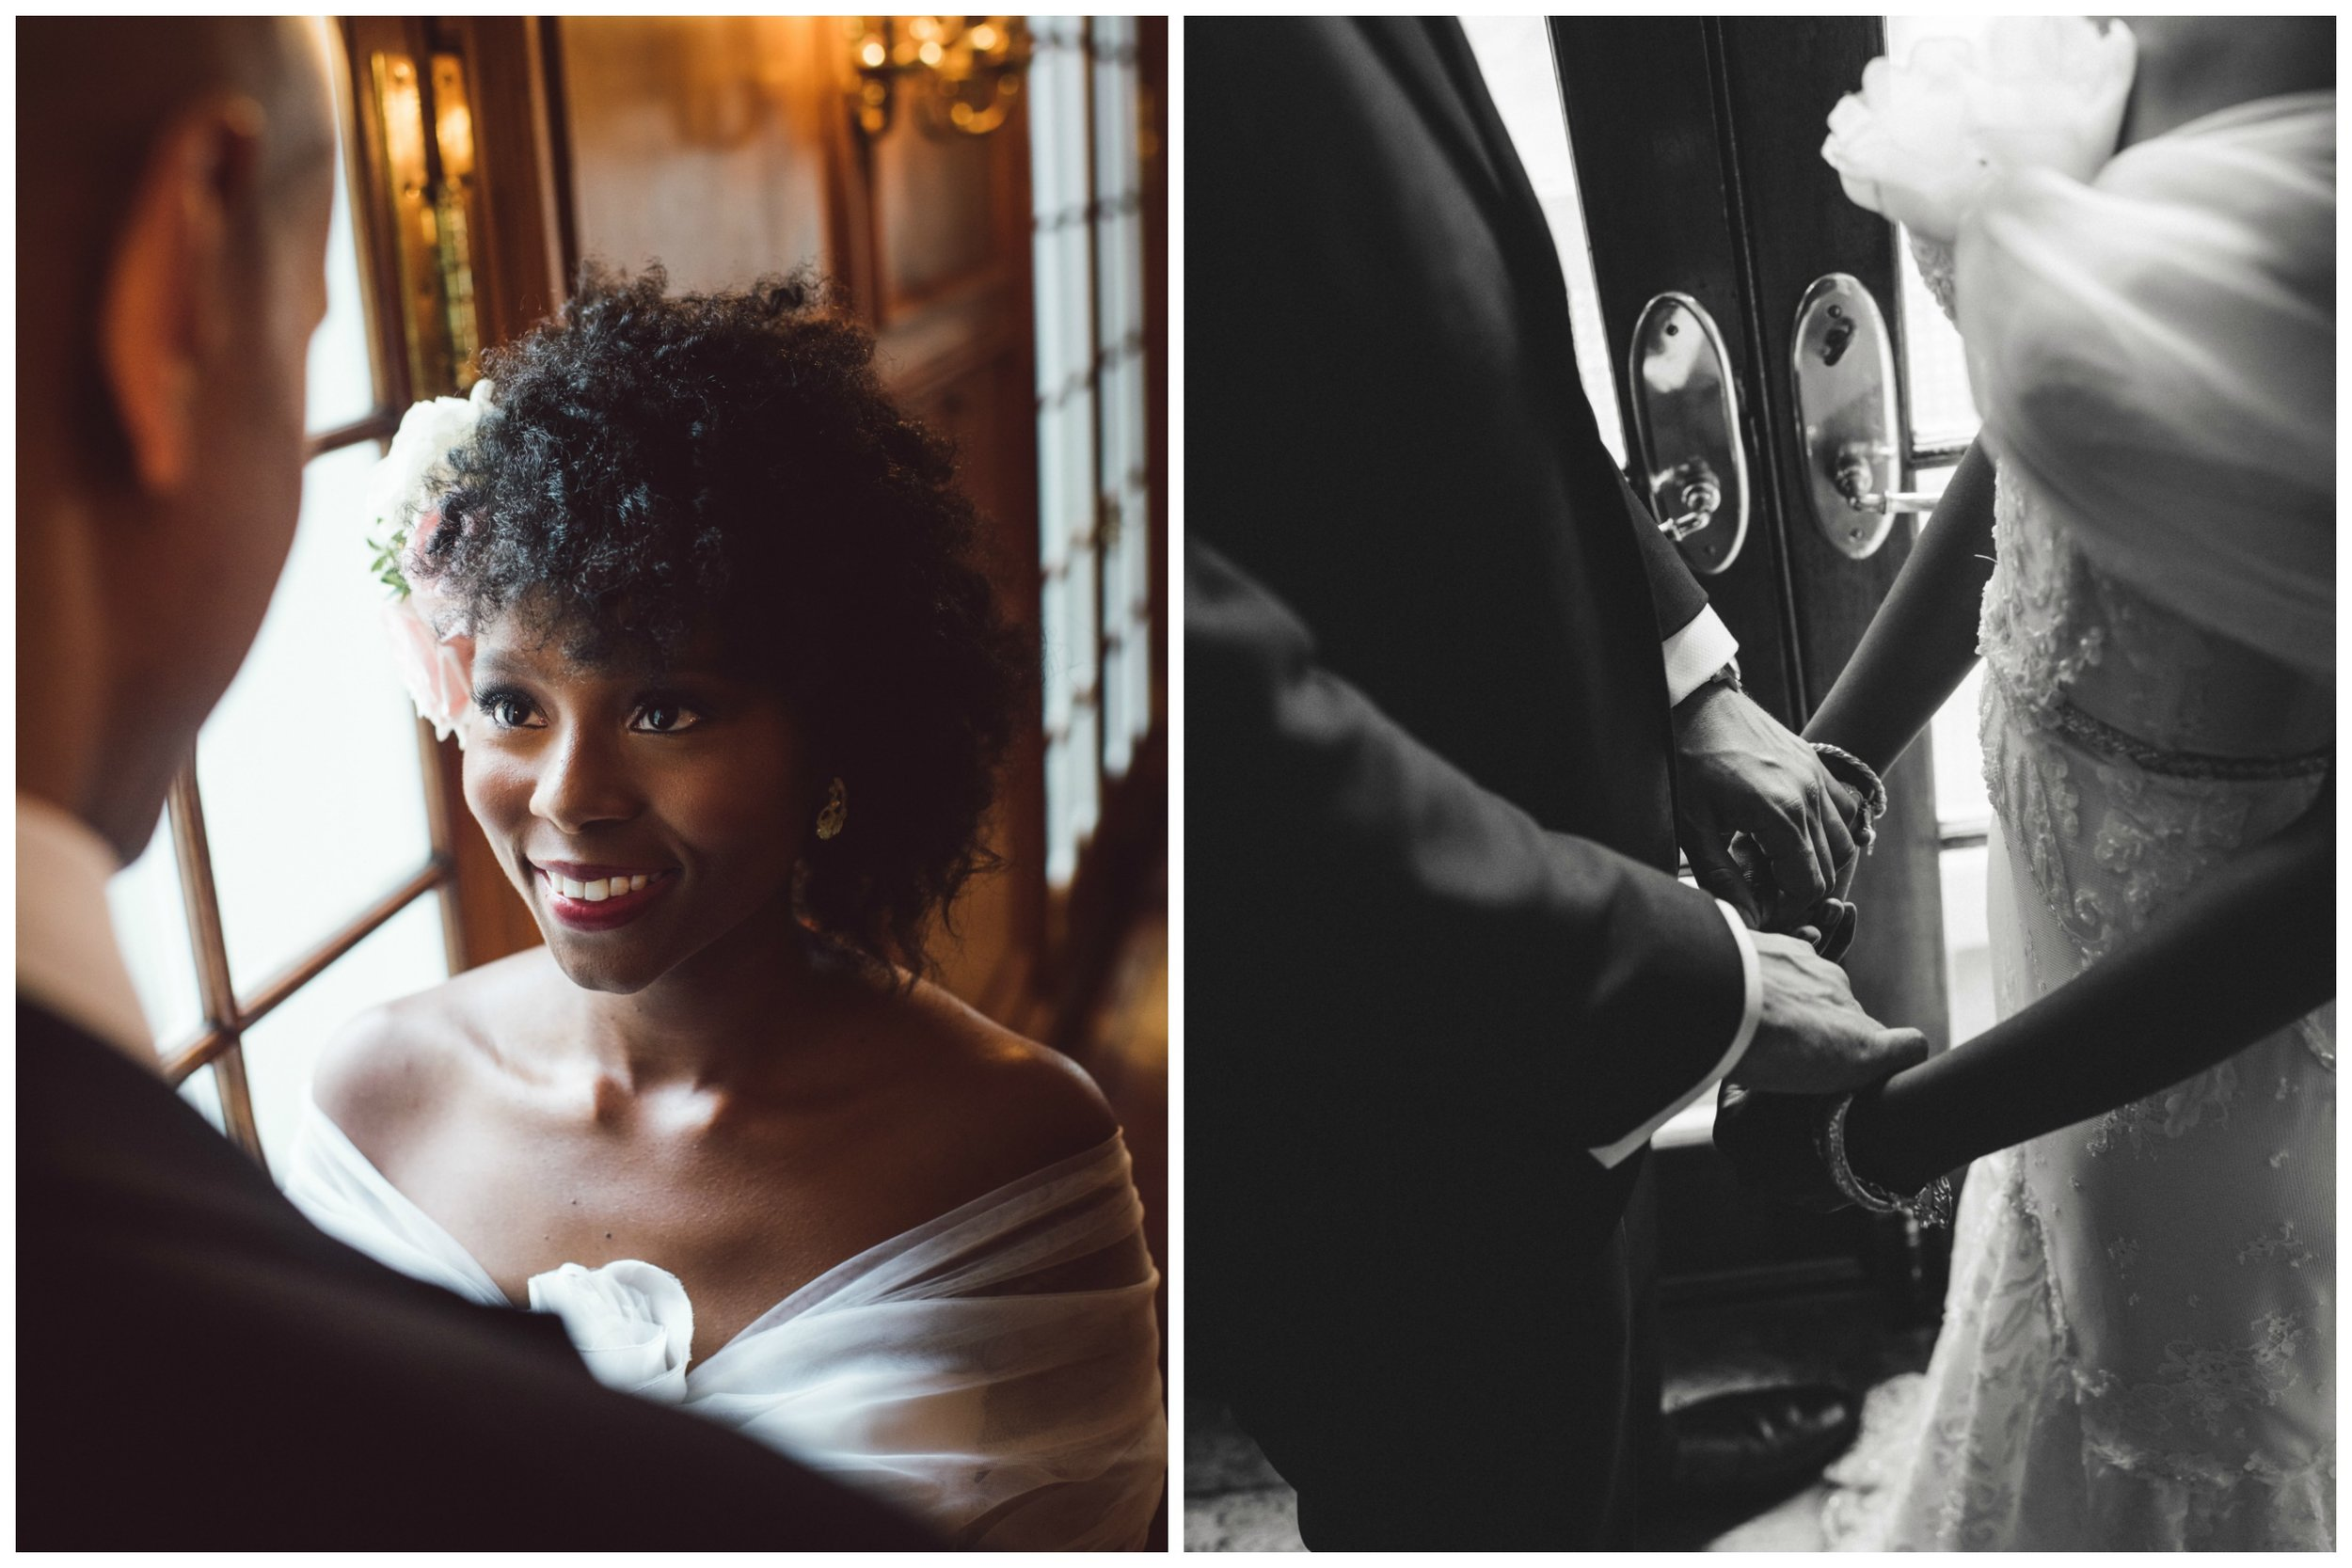 GLENVIEW MANSION PIC STITCH - INTIMATE WEDDING PHOTOGRAPHER - TWOTWENTY by CHI-CHI AGBIM 6.jpg